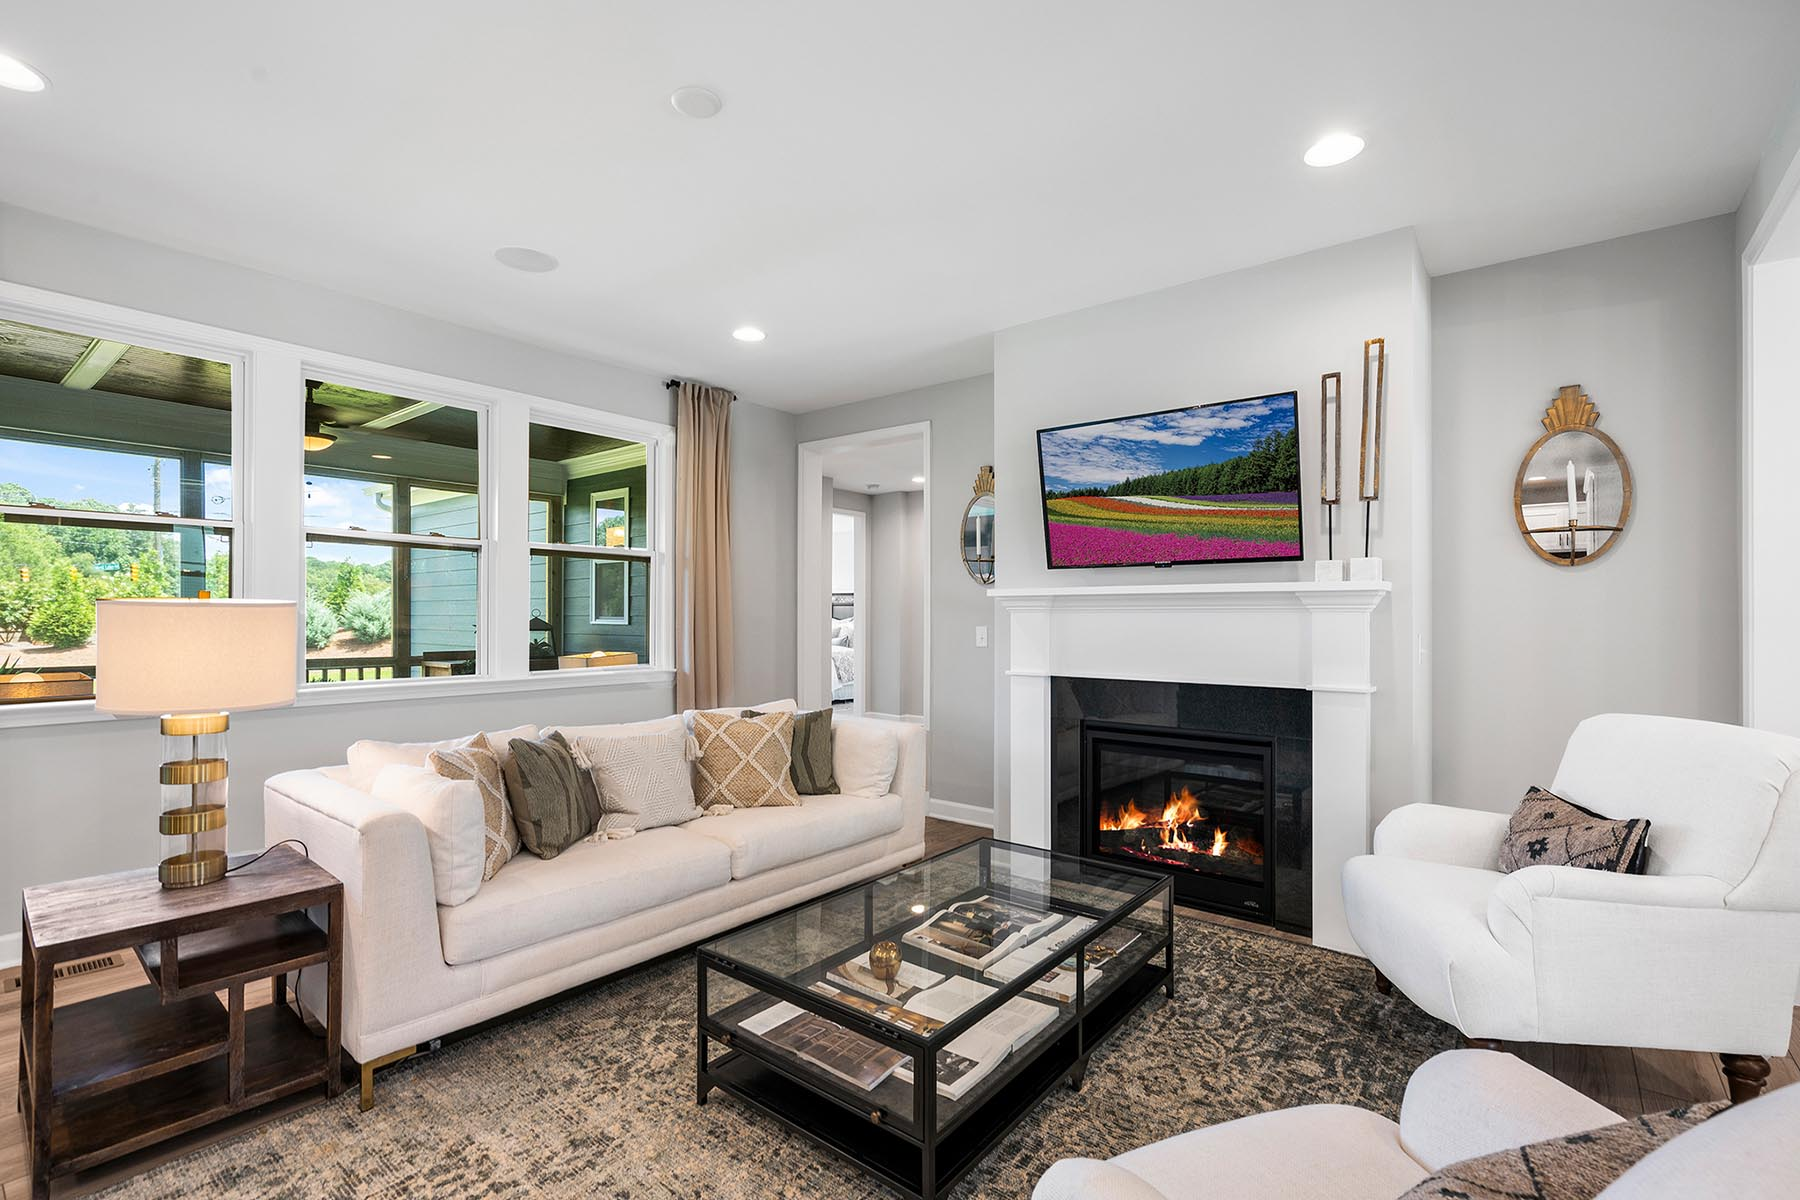 Larkin Plan Greatroom at Fairview Park in Cary North Carolina by Mattamy Homes